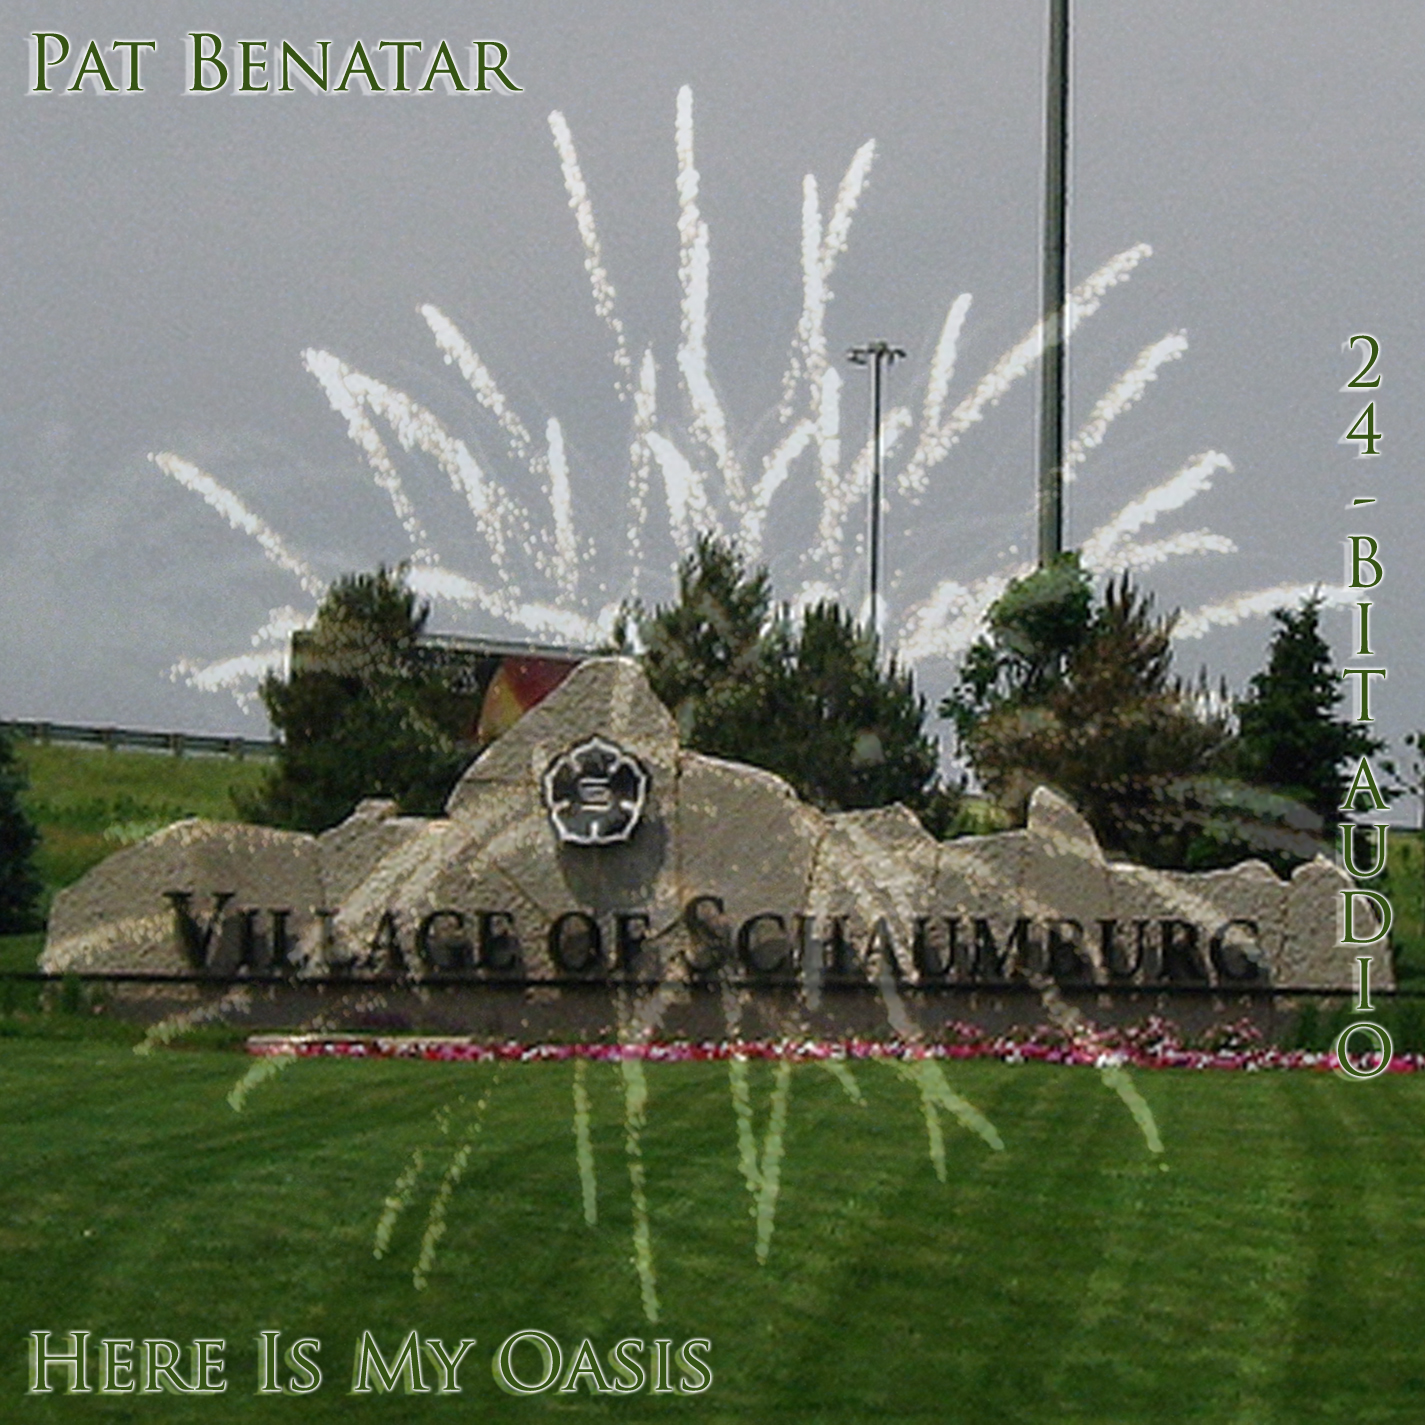 Pat Benatar - Here Is My Oasis - Cover (24bit version - audio dvd)